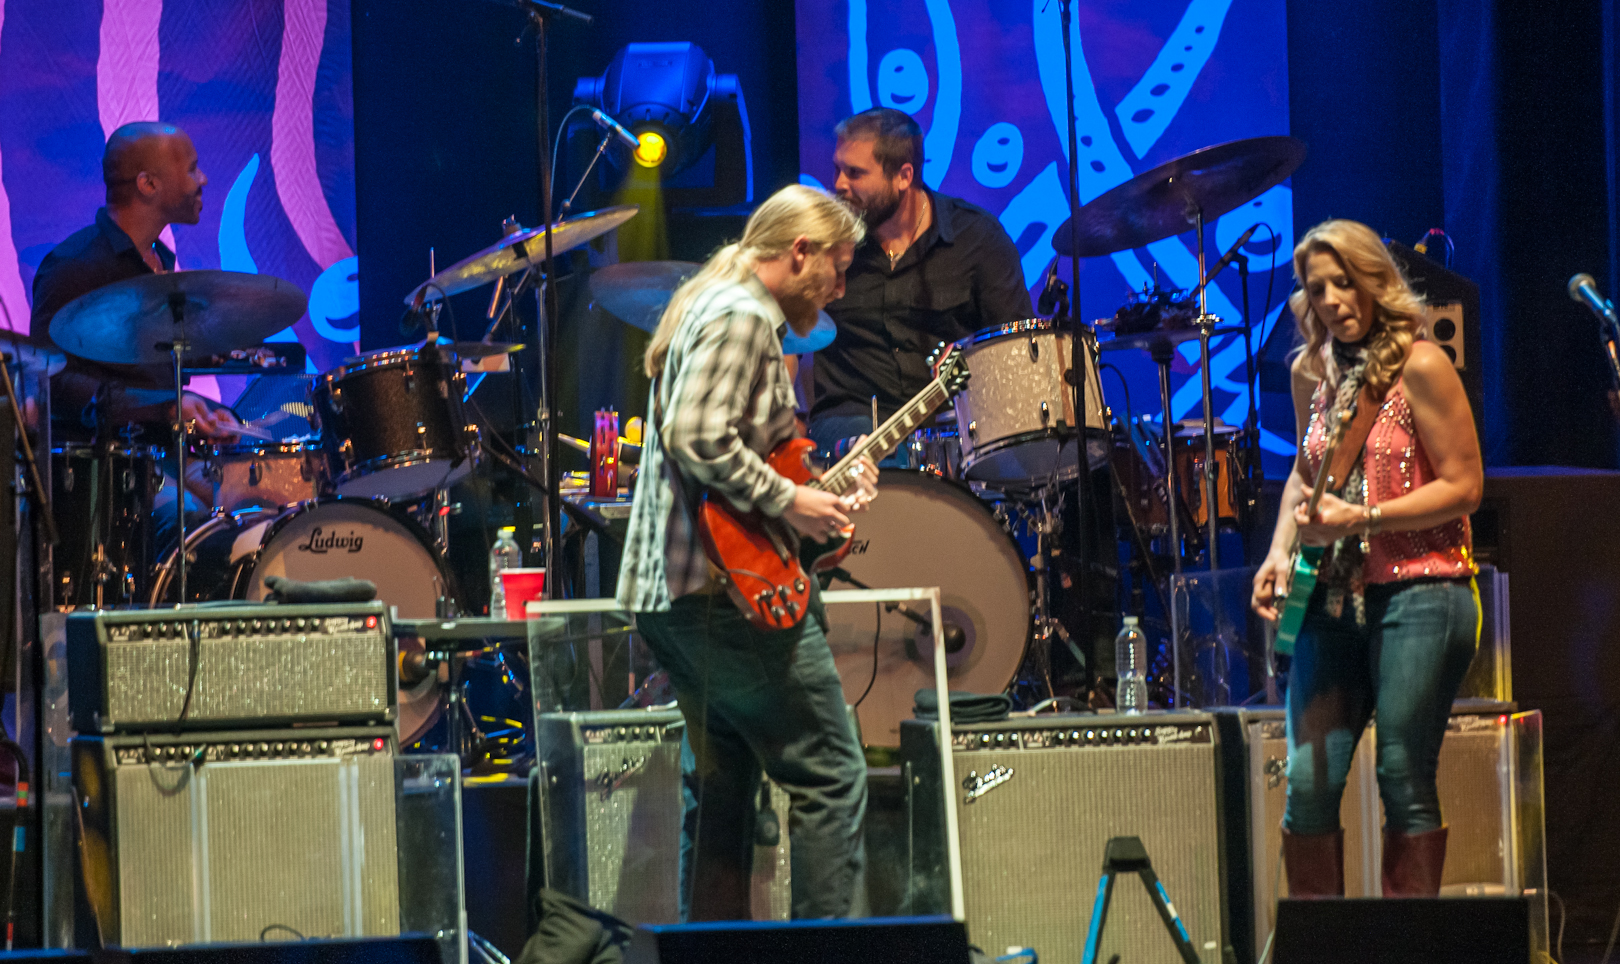 Derek Trucks, Susan Tedeschi, J.J. Johnson and Tyler Greenwell with the Tedeschi Trucks Band at the Beacon